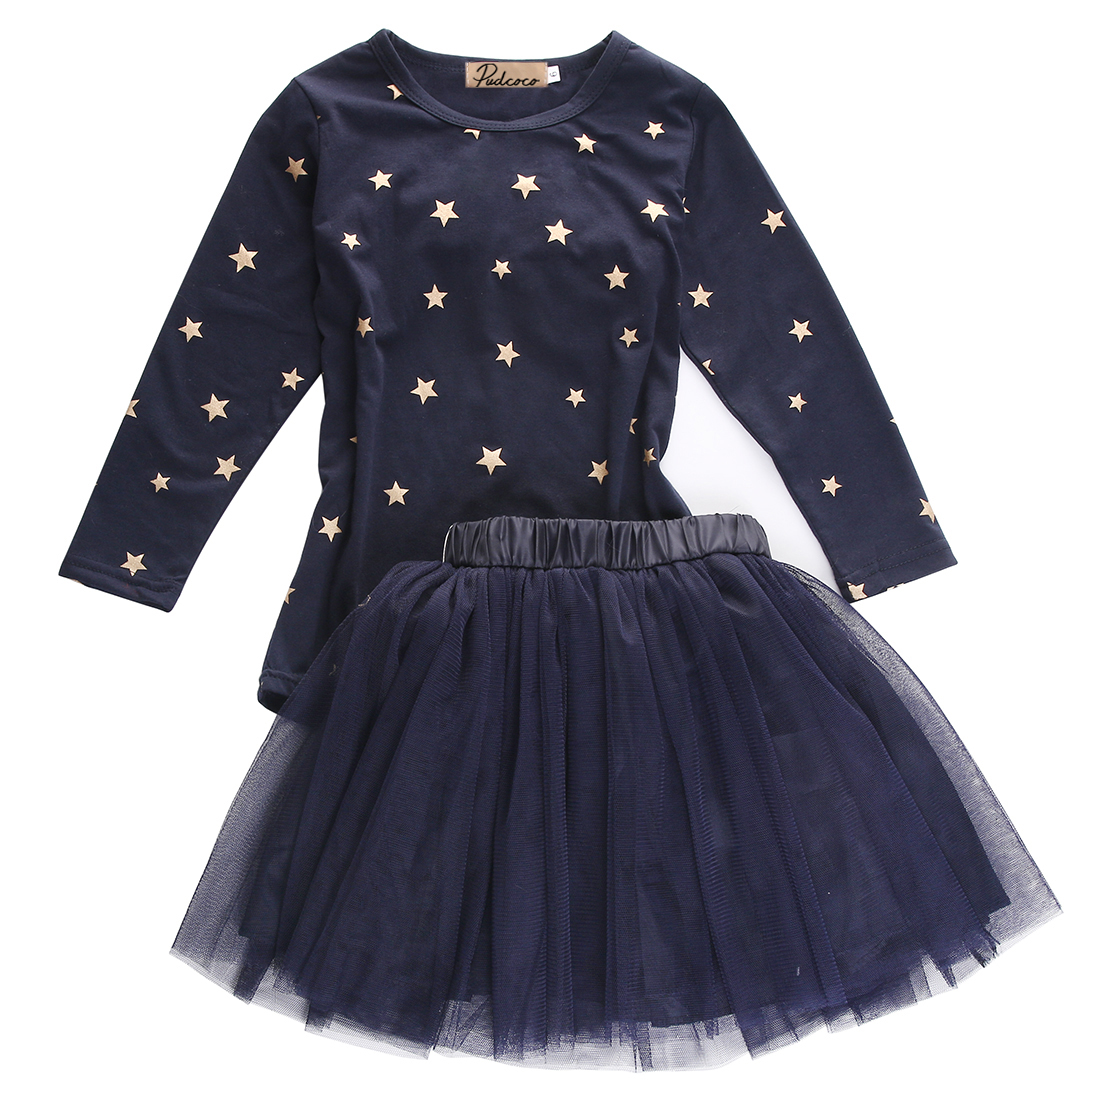 Children Baby Girl Clothes Set Party Tops Long Sleeve T-shirt Star Tulle Skirts Outfits Set Tutu Skirt Children Clothing Casual clothing set kids baby girl short sleeve t shirt tutu floral skirt set summer outfits